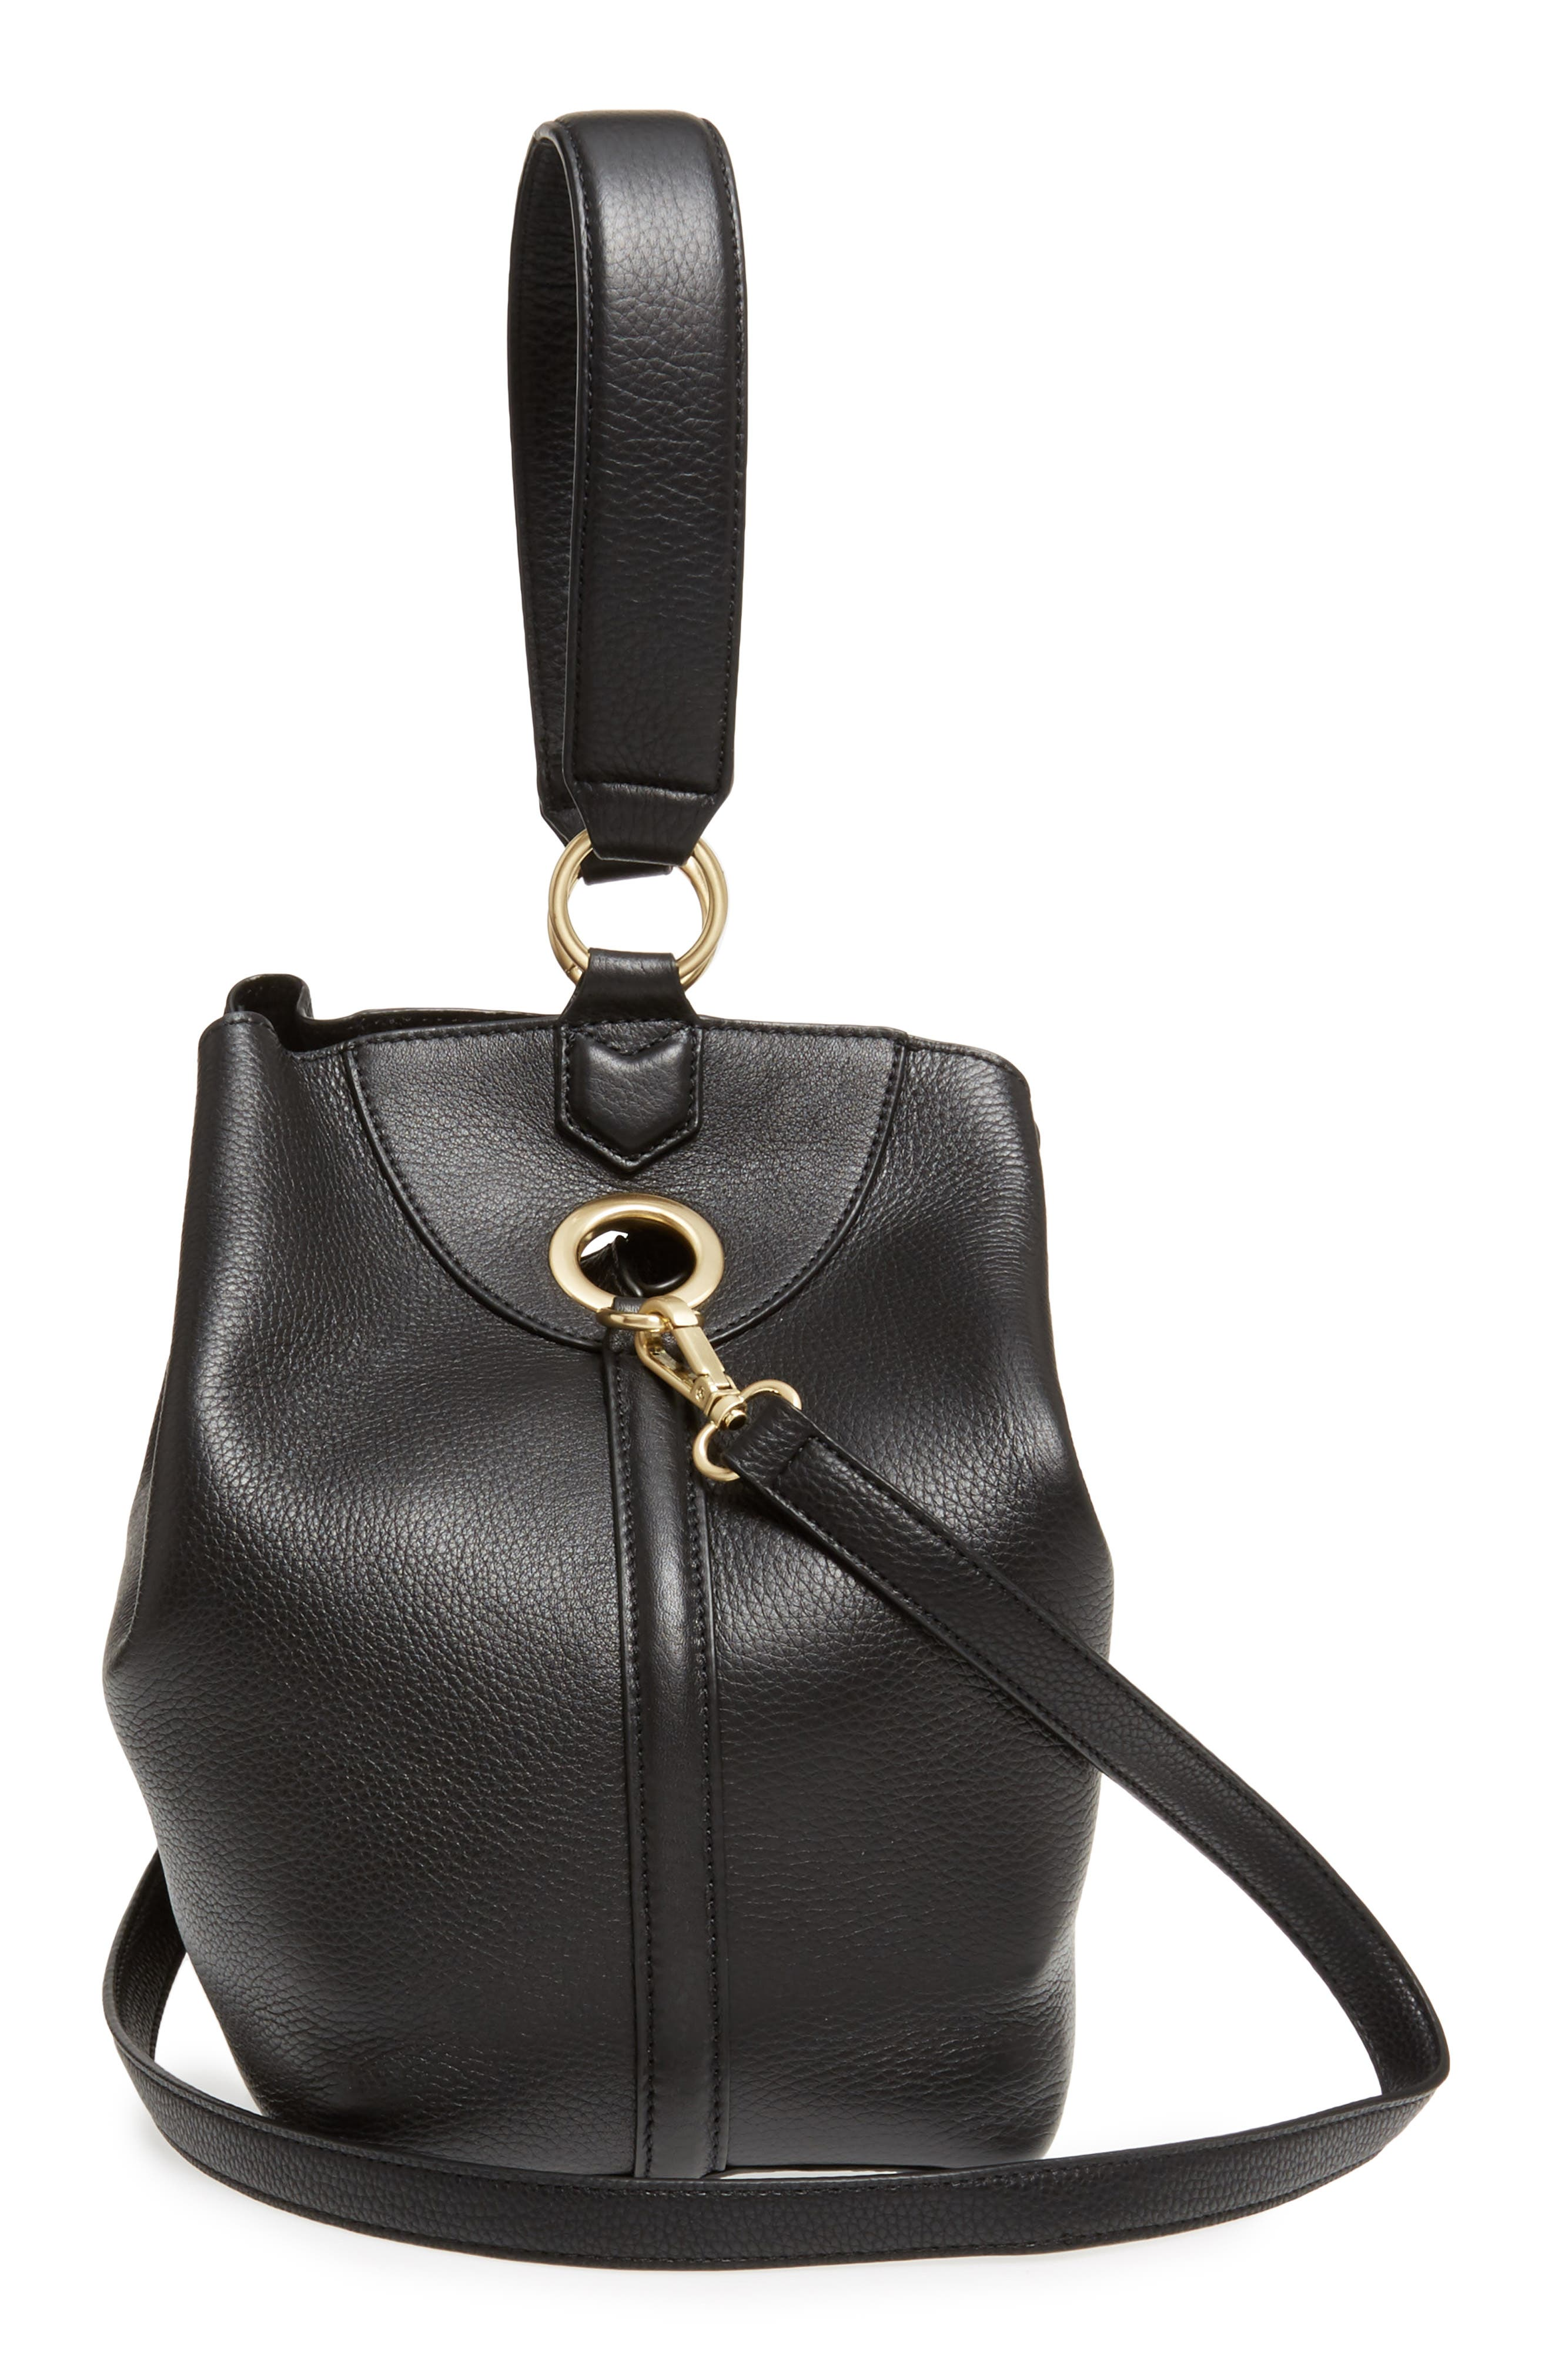 Renee Leather Bucket Bag,                             Alternate thumbnail 5, color,                             001